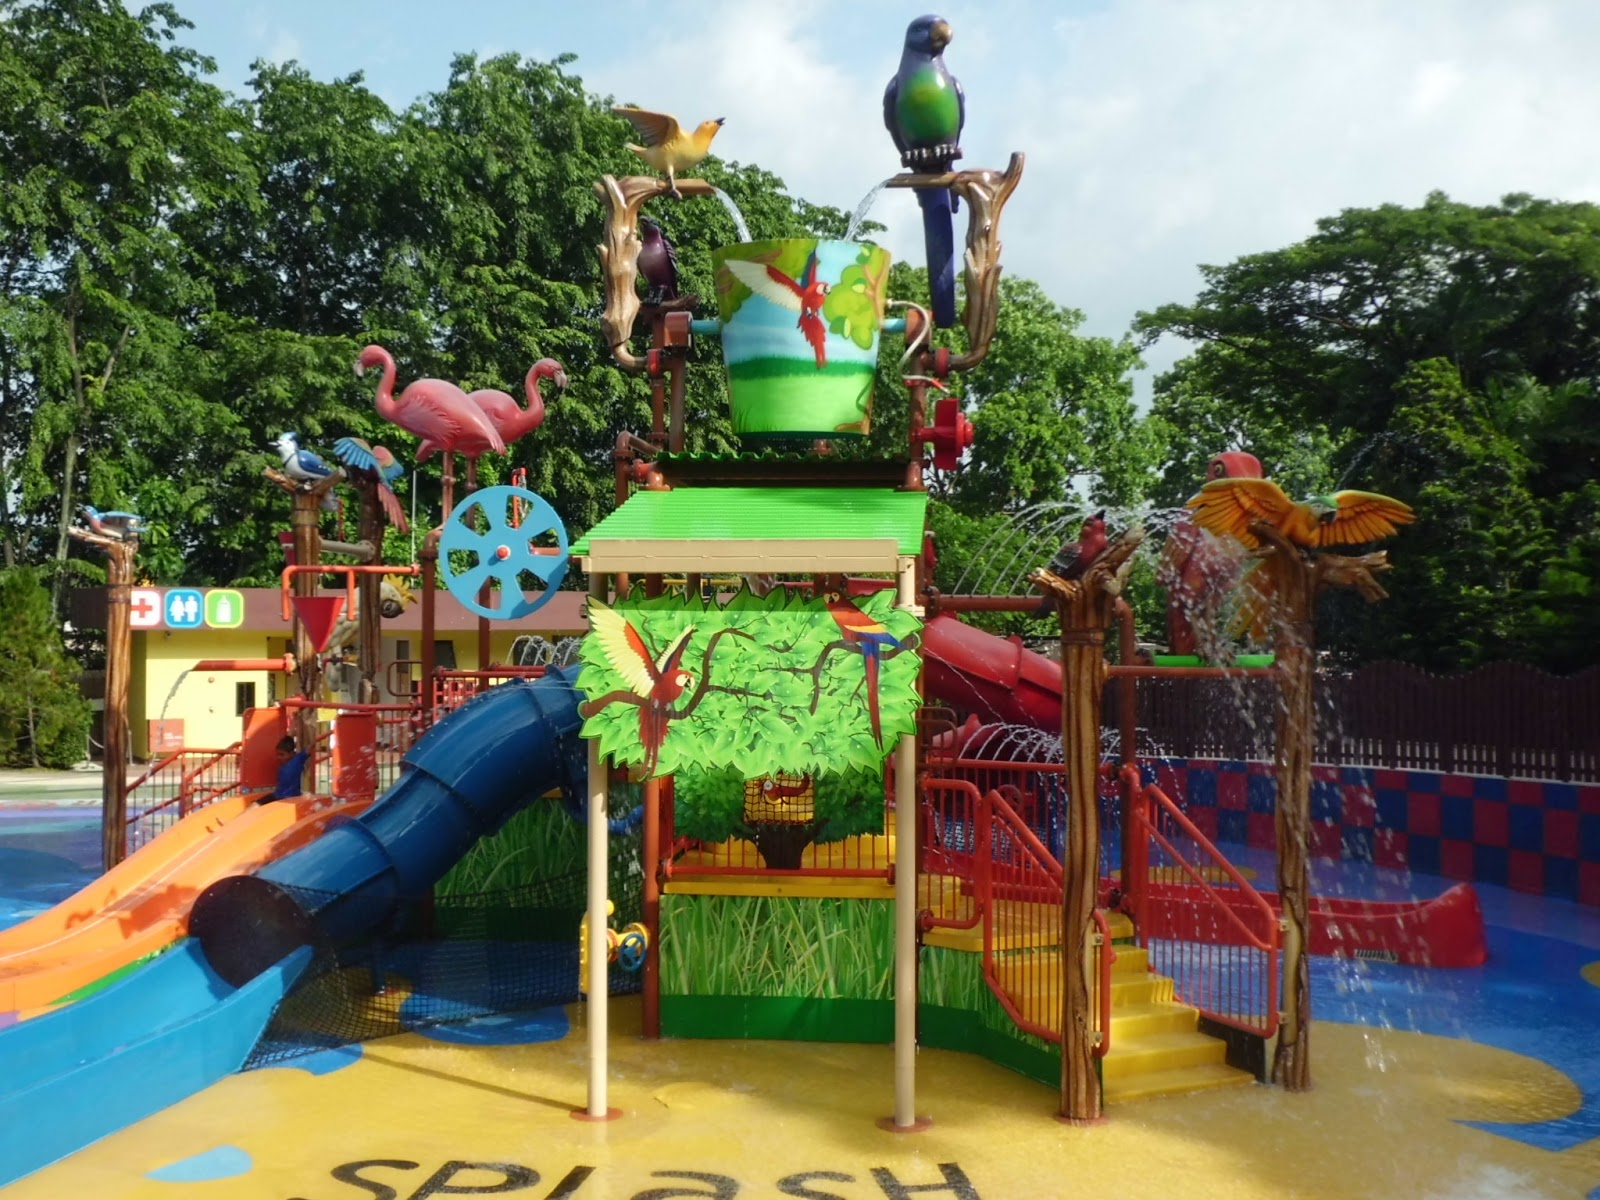 Kids World at Singapore Jurong Bird Park